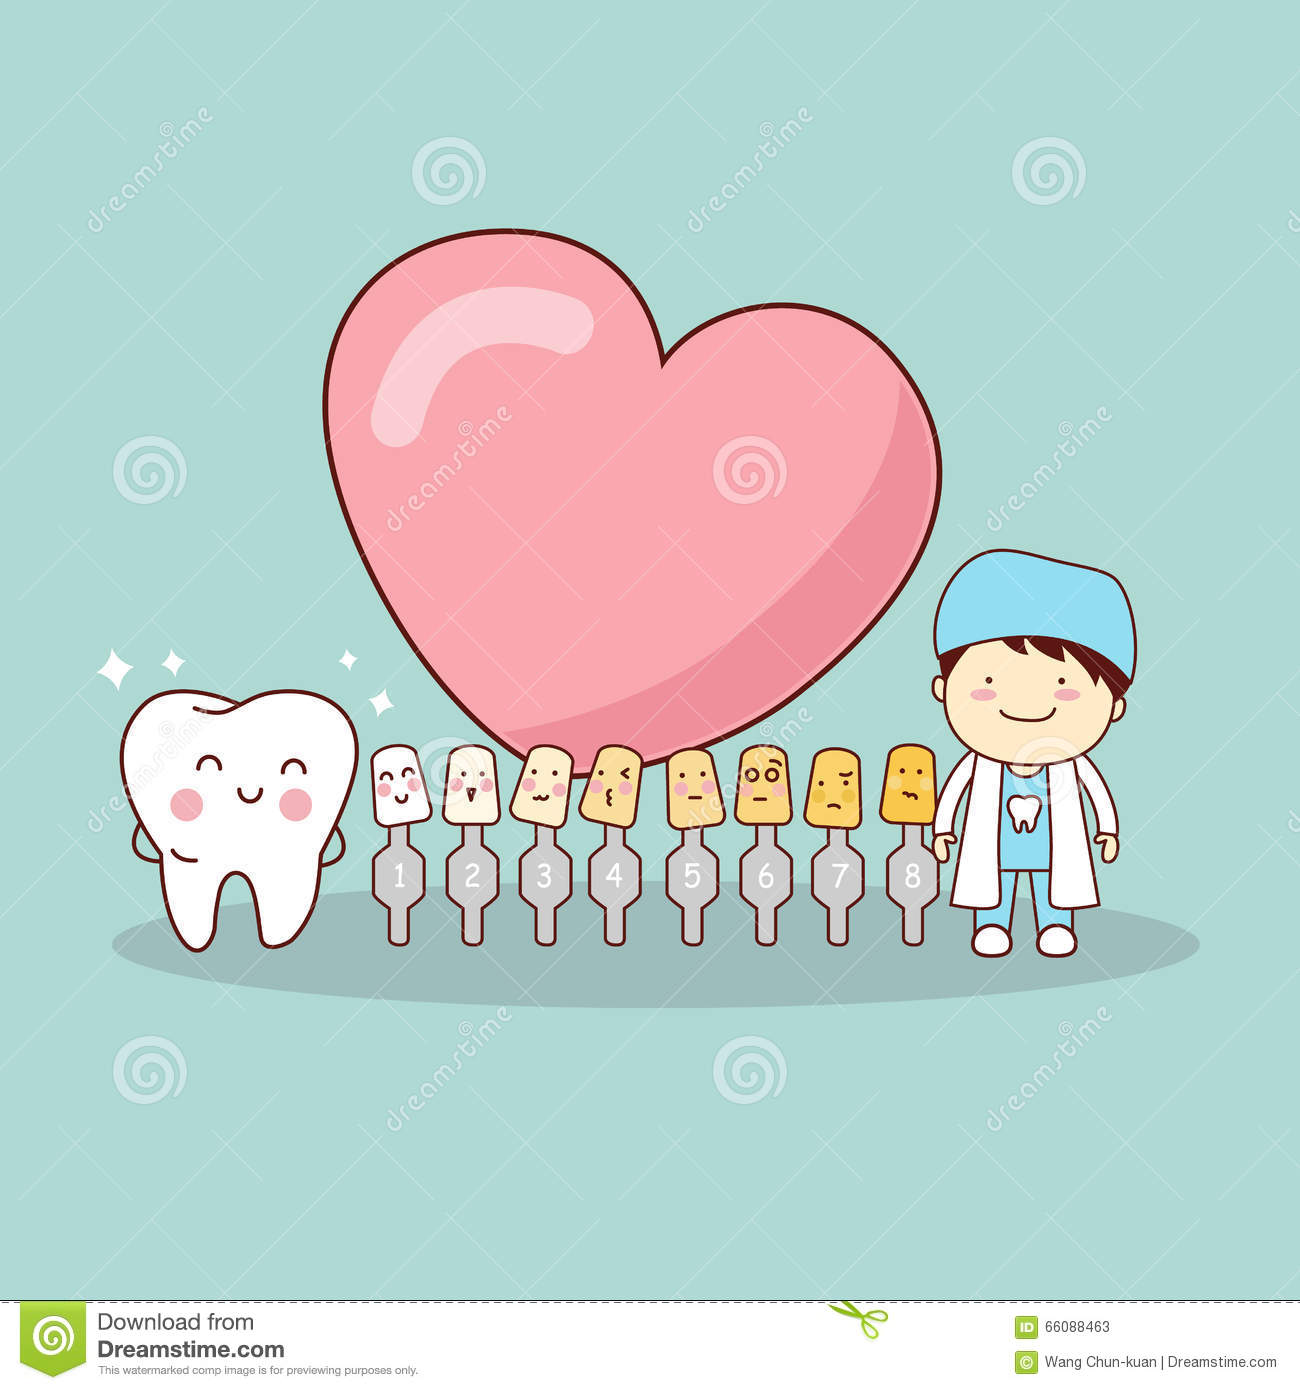 happy-cartoon-tooth-dentist-love-heart-whitening-bleaching-tool-great-dental-care-teeth-whitening-66088463.jpg